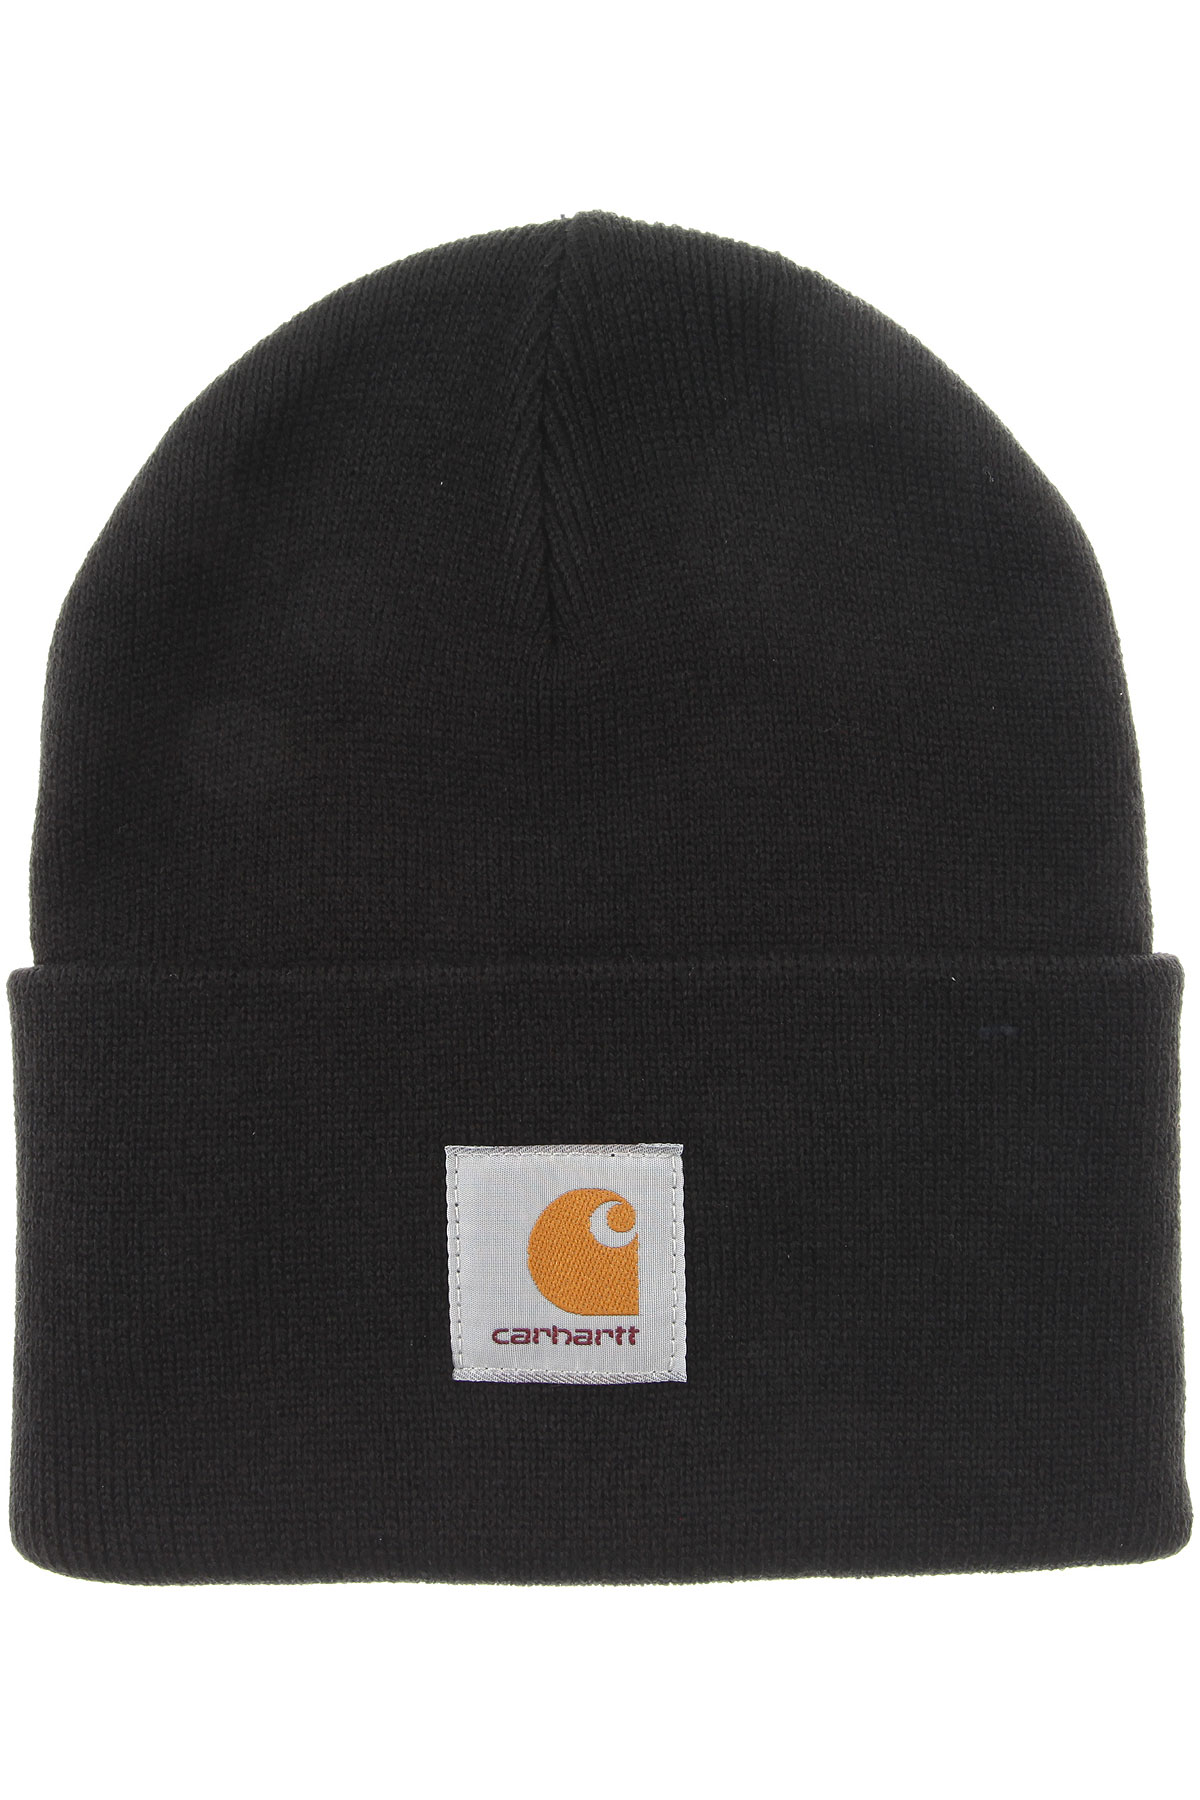 Image of Carhartt Hat for Women, Black, Acrylic, 2017